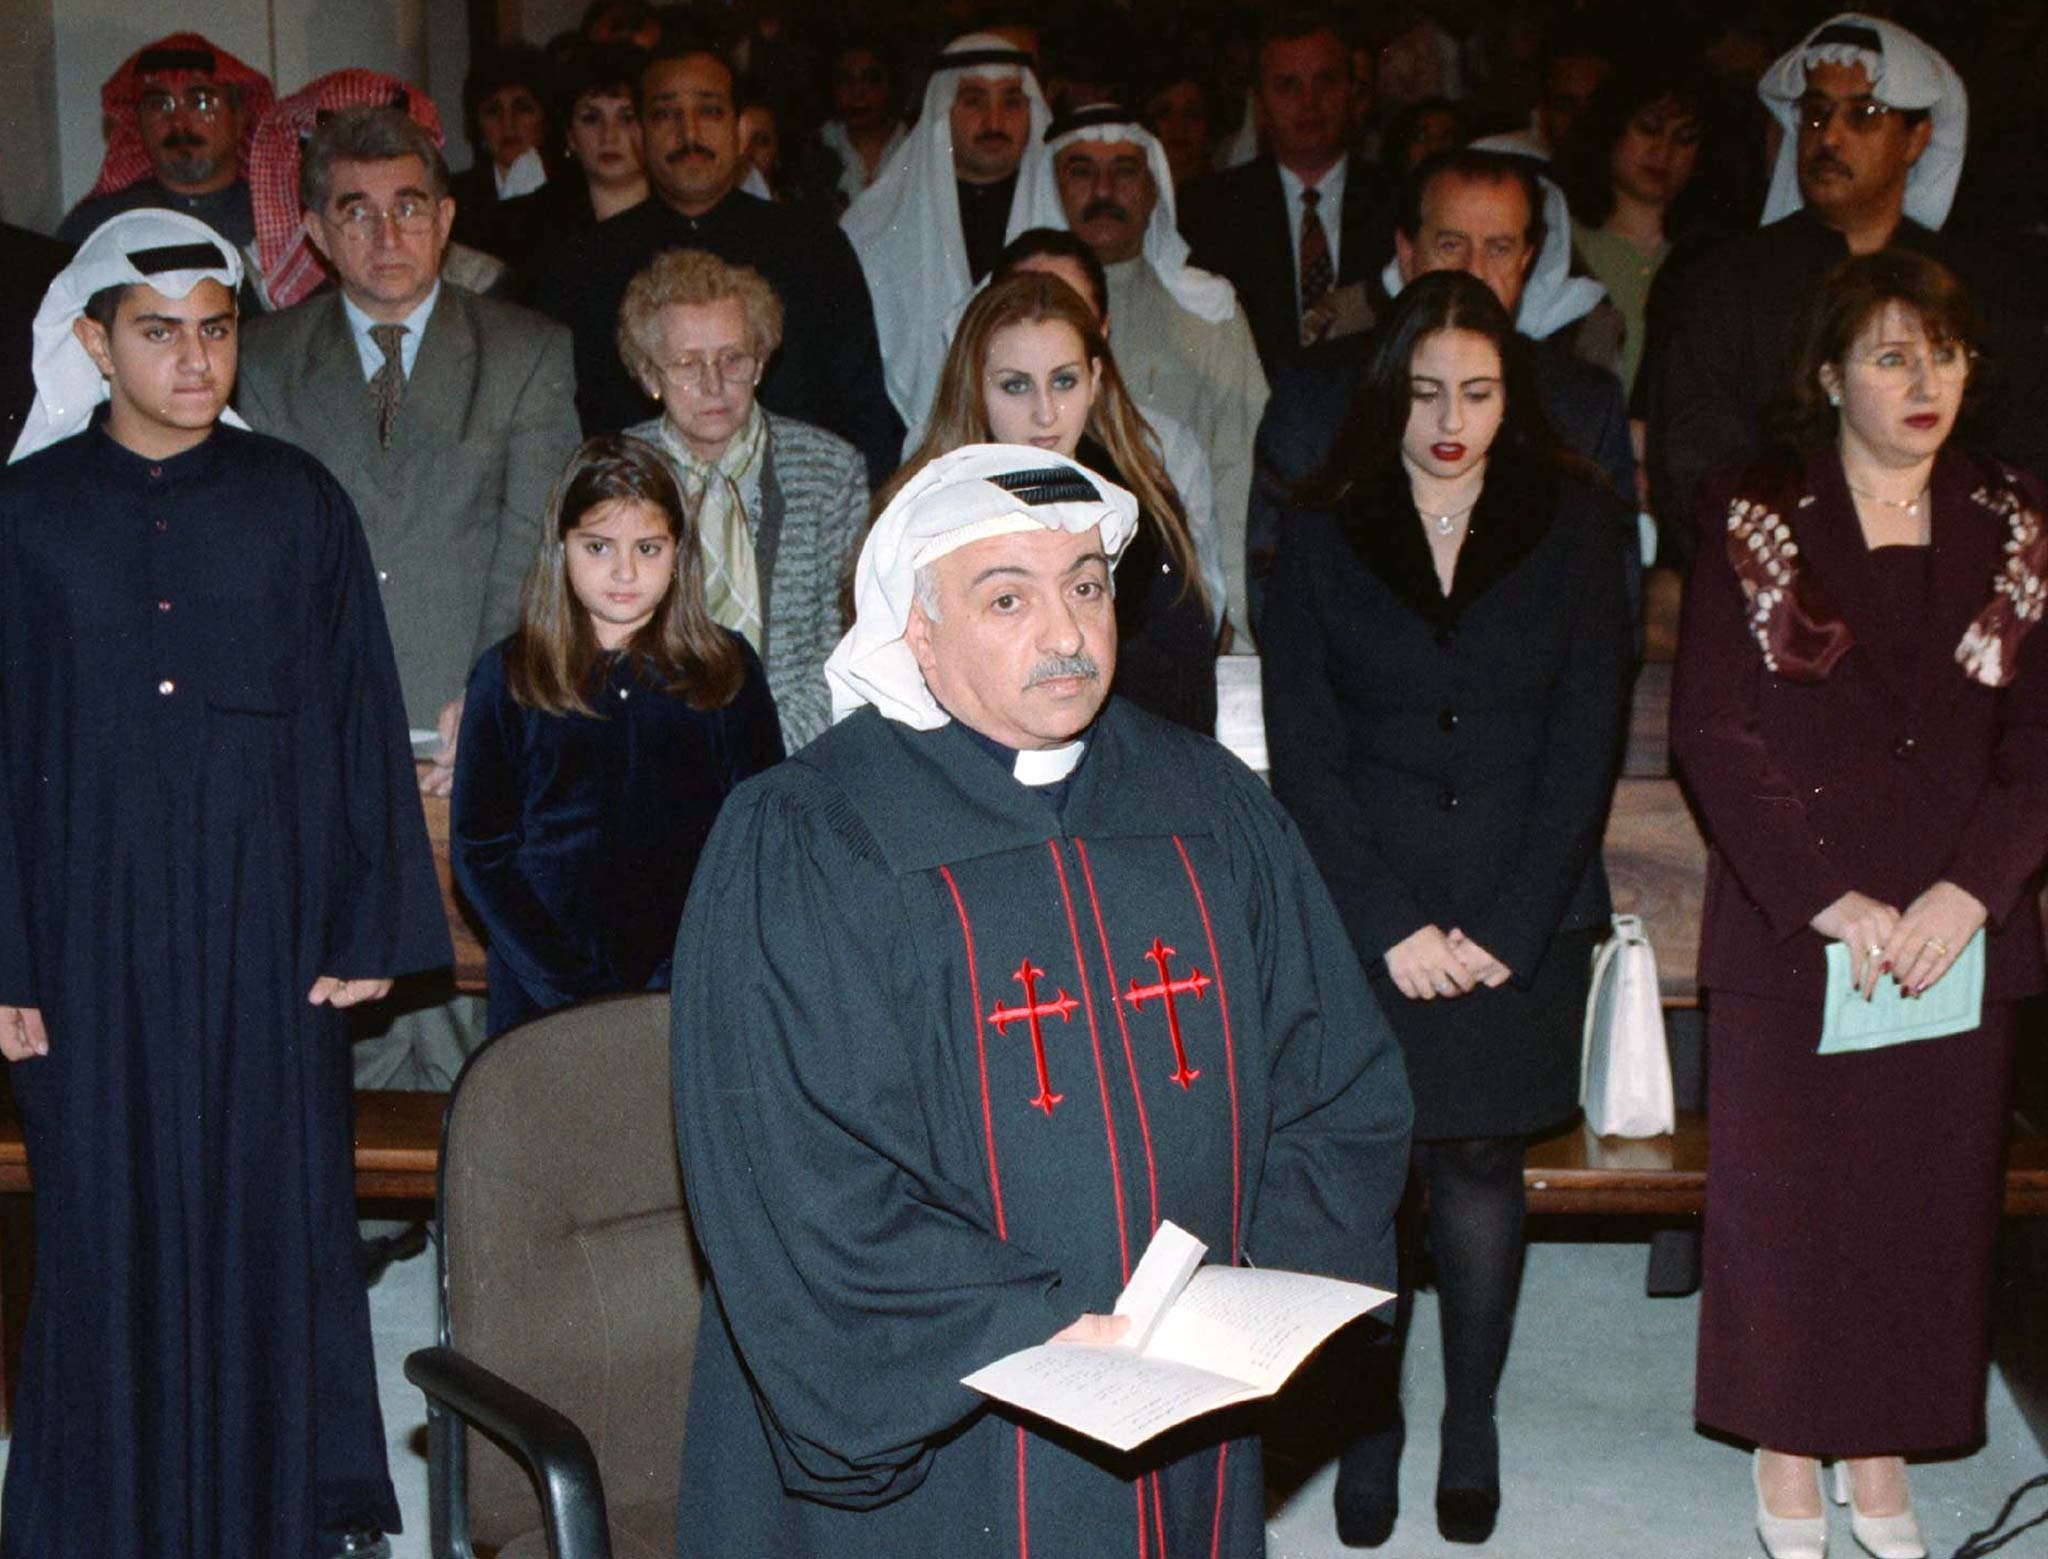 Kuwaiti citizen Emmanuel Benjamen al-Gharib (C) prays on January 8, 1999 while his wife and children stand in the church pews behind him. (Reuters)